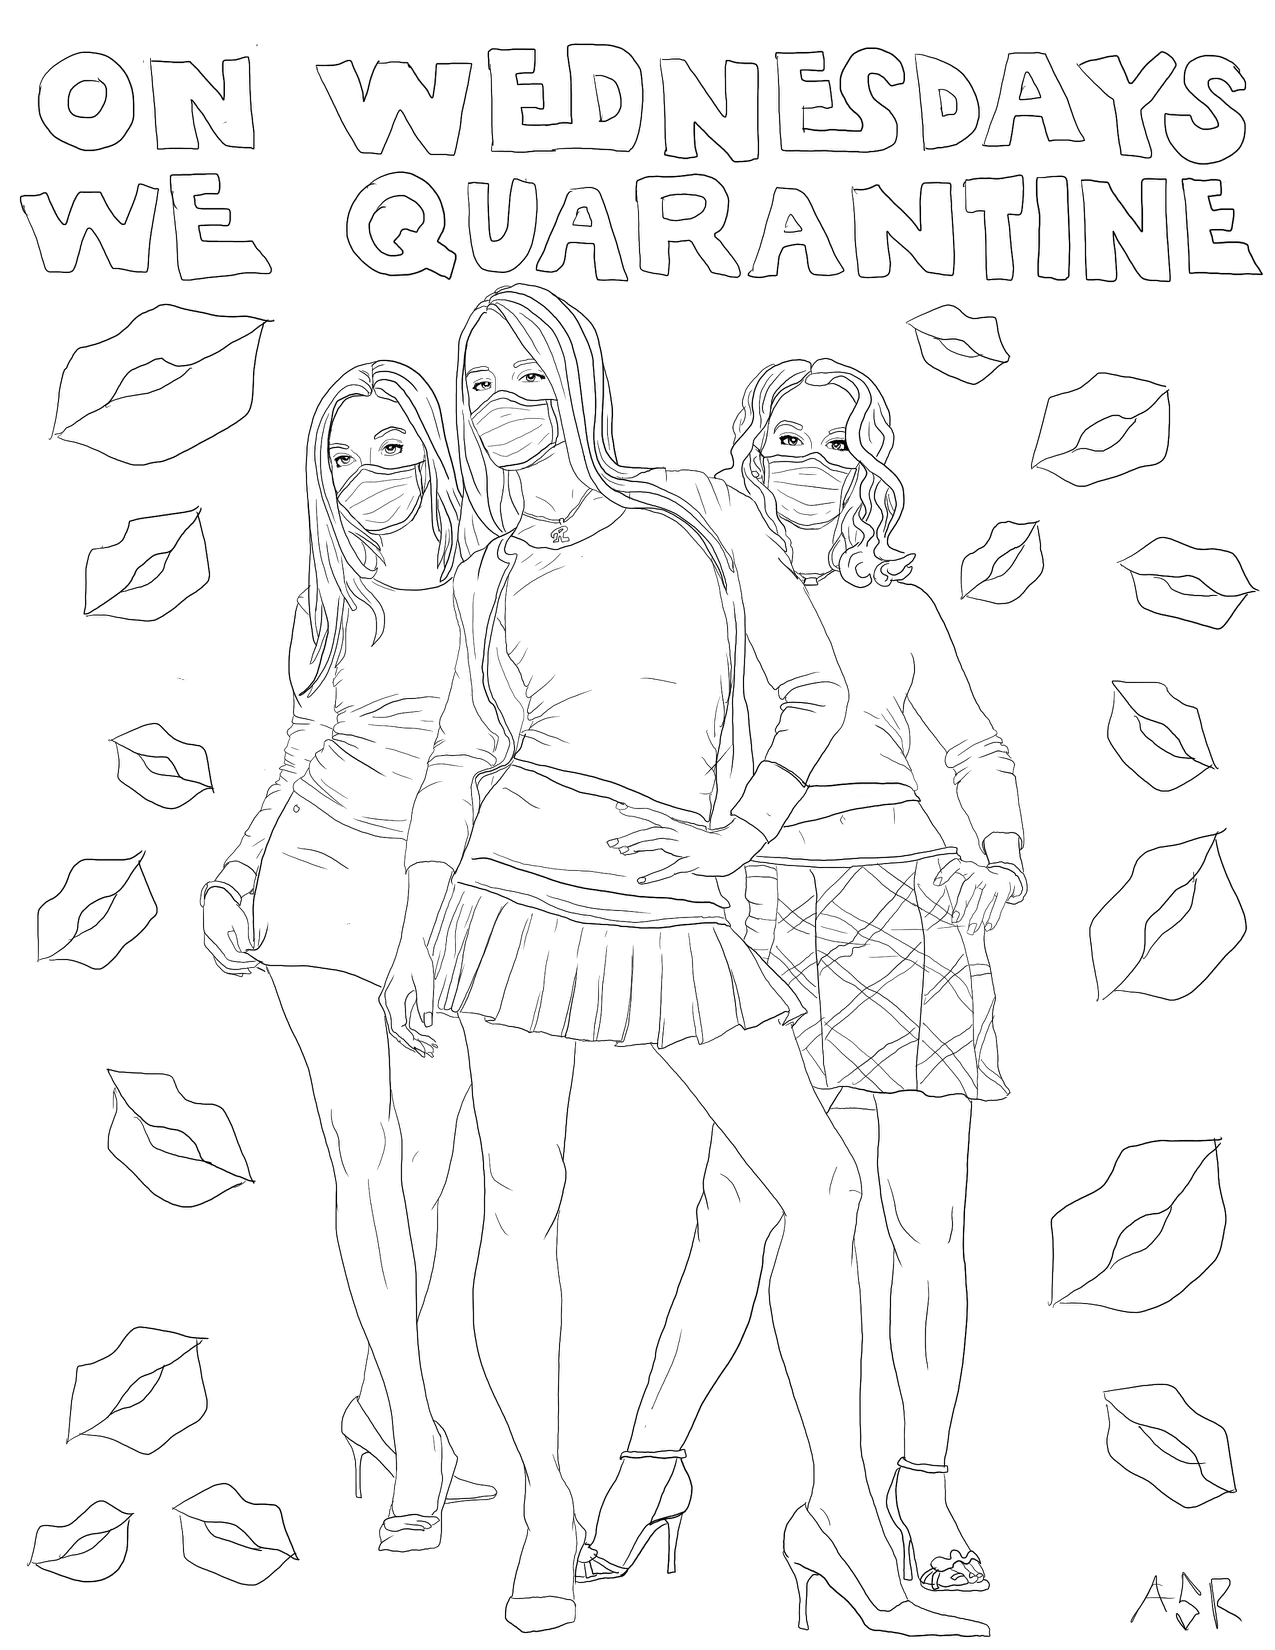 http://www.pastemagazine.com/articles/2020/05/13/meangirls_coloringpage.png